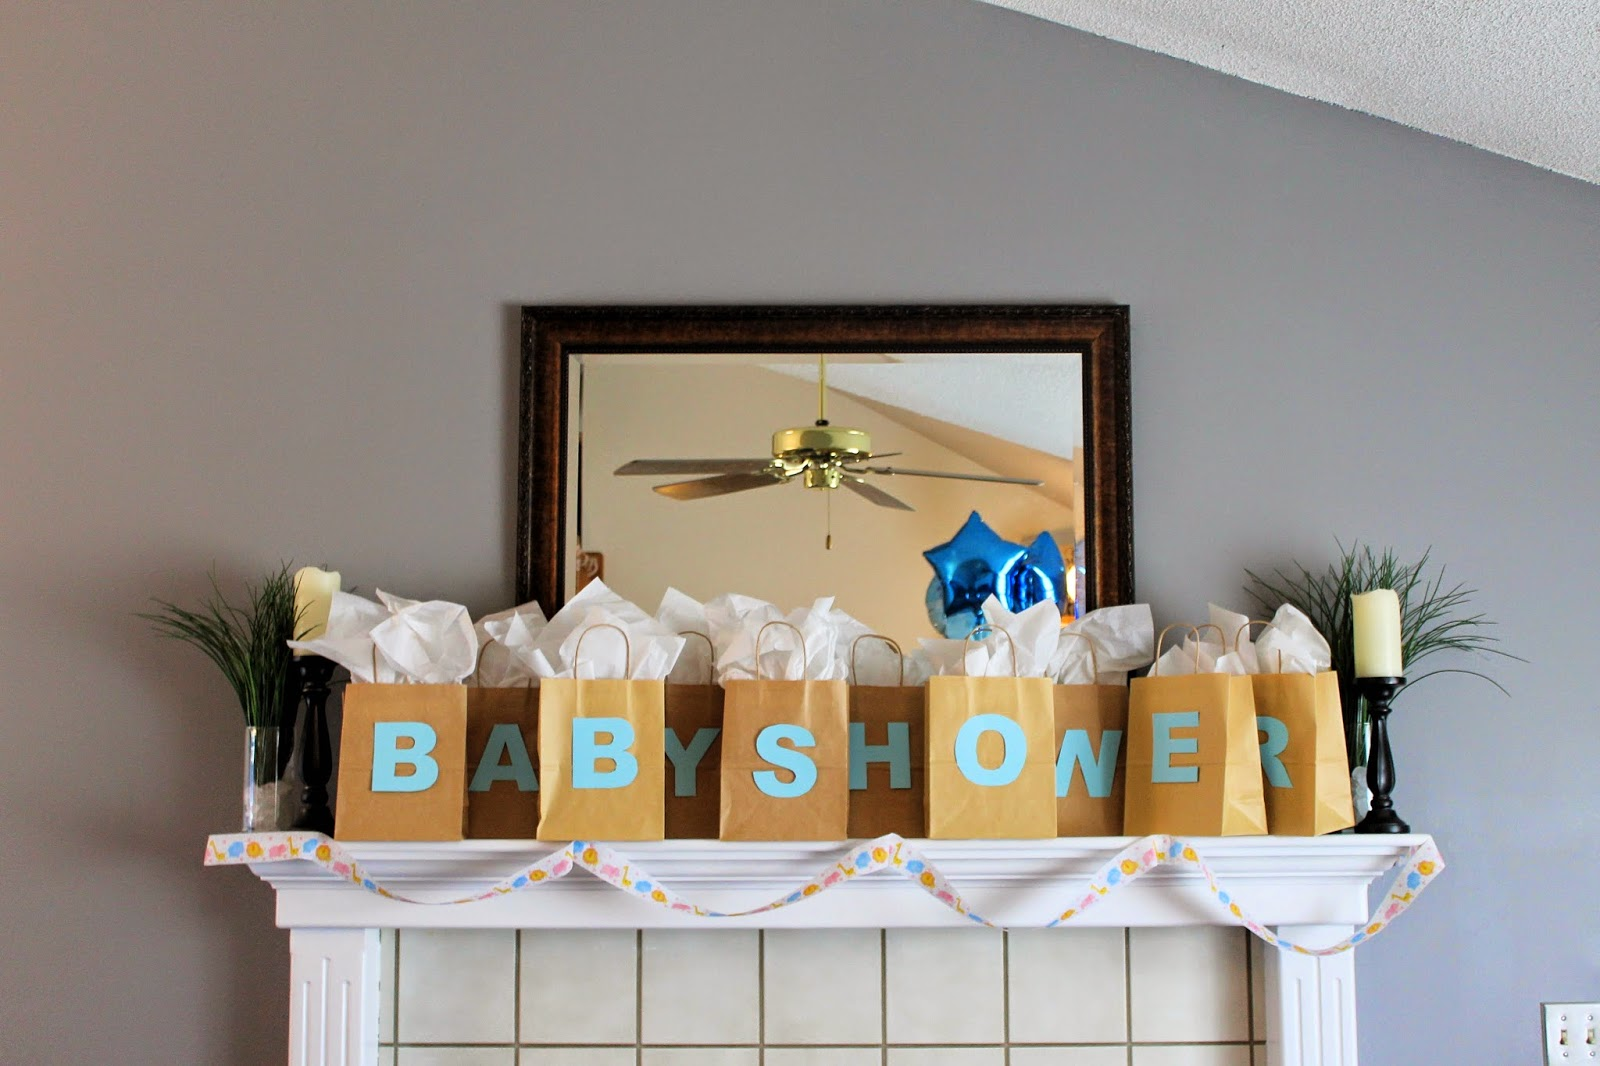 fun game for a baby shower, baby shower guessing game